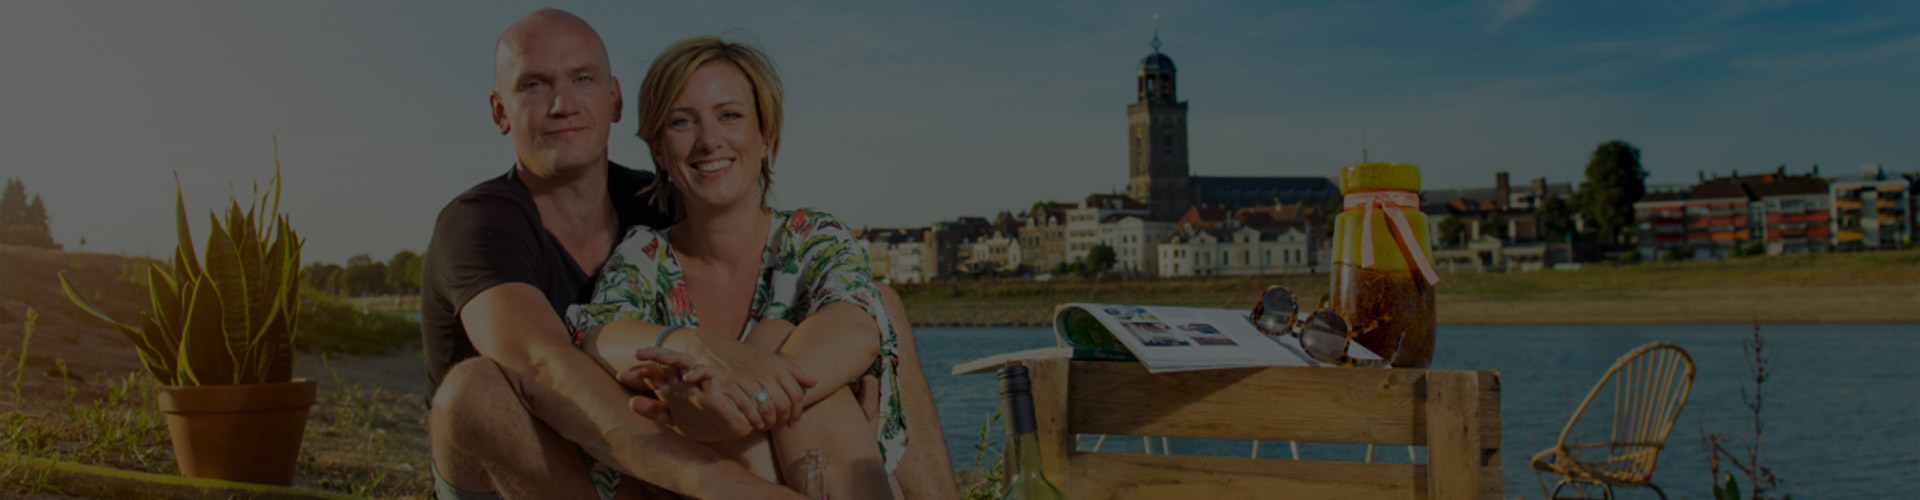 Contact Deventer Stadsstrand | Koos & Evelien